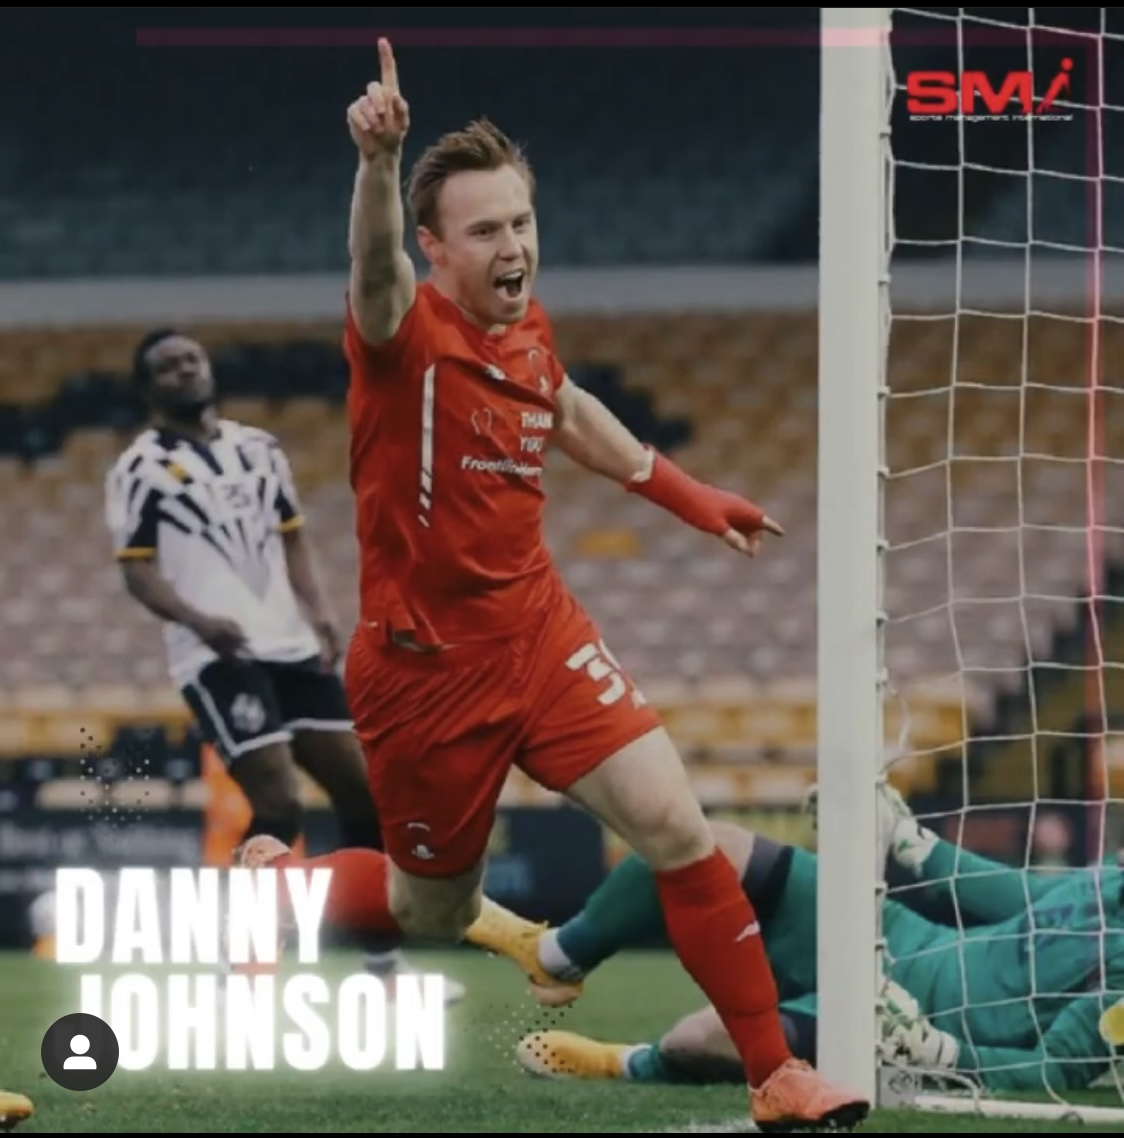 Player and goal of the month for DJ39